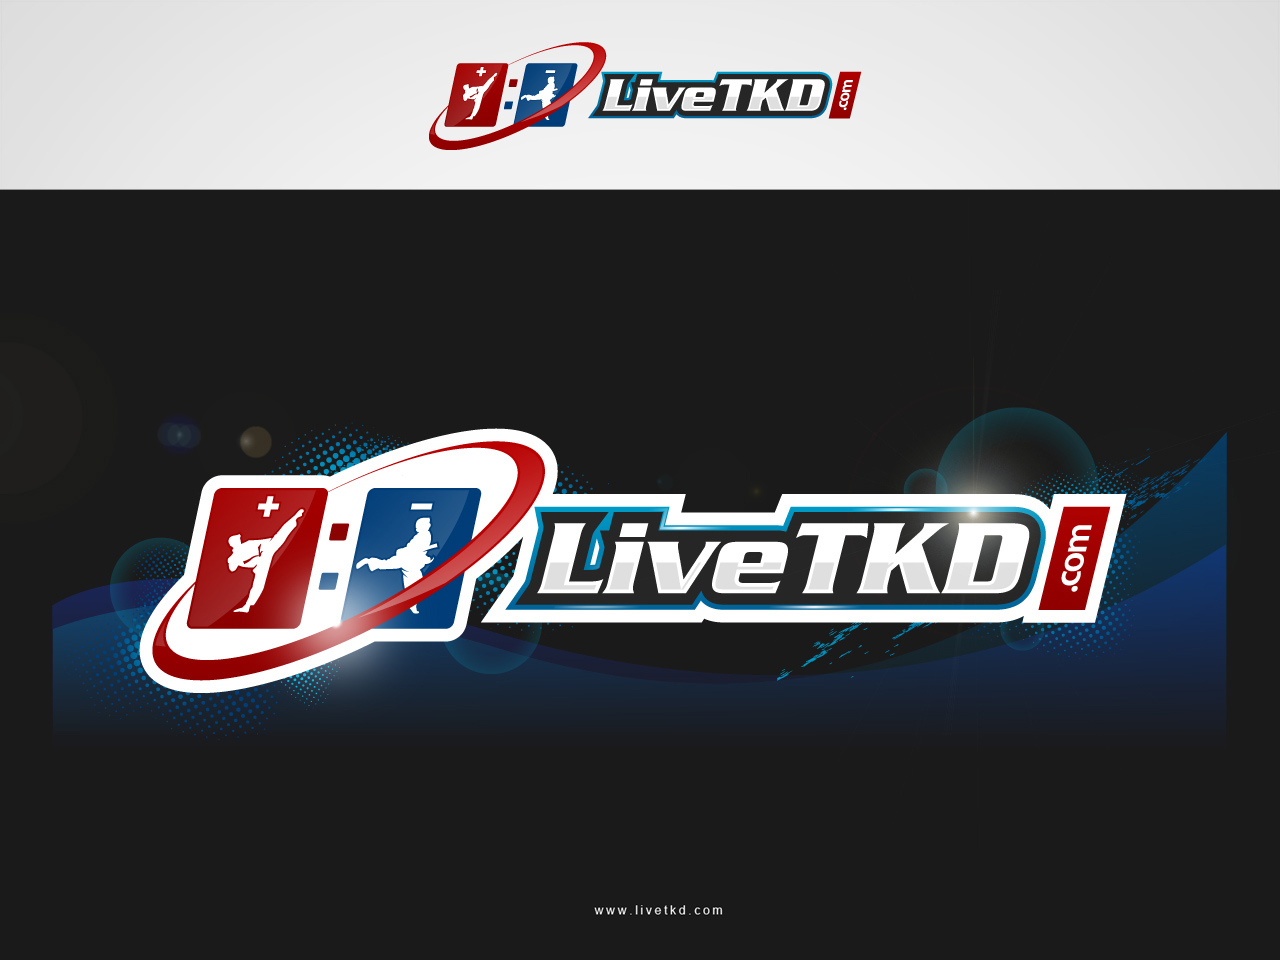 Logo Design by jpbituin - Entry No. 168 in the Logo Design Contest New Logo Design for LiveTKD.com.